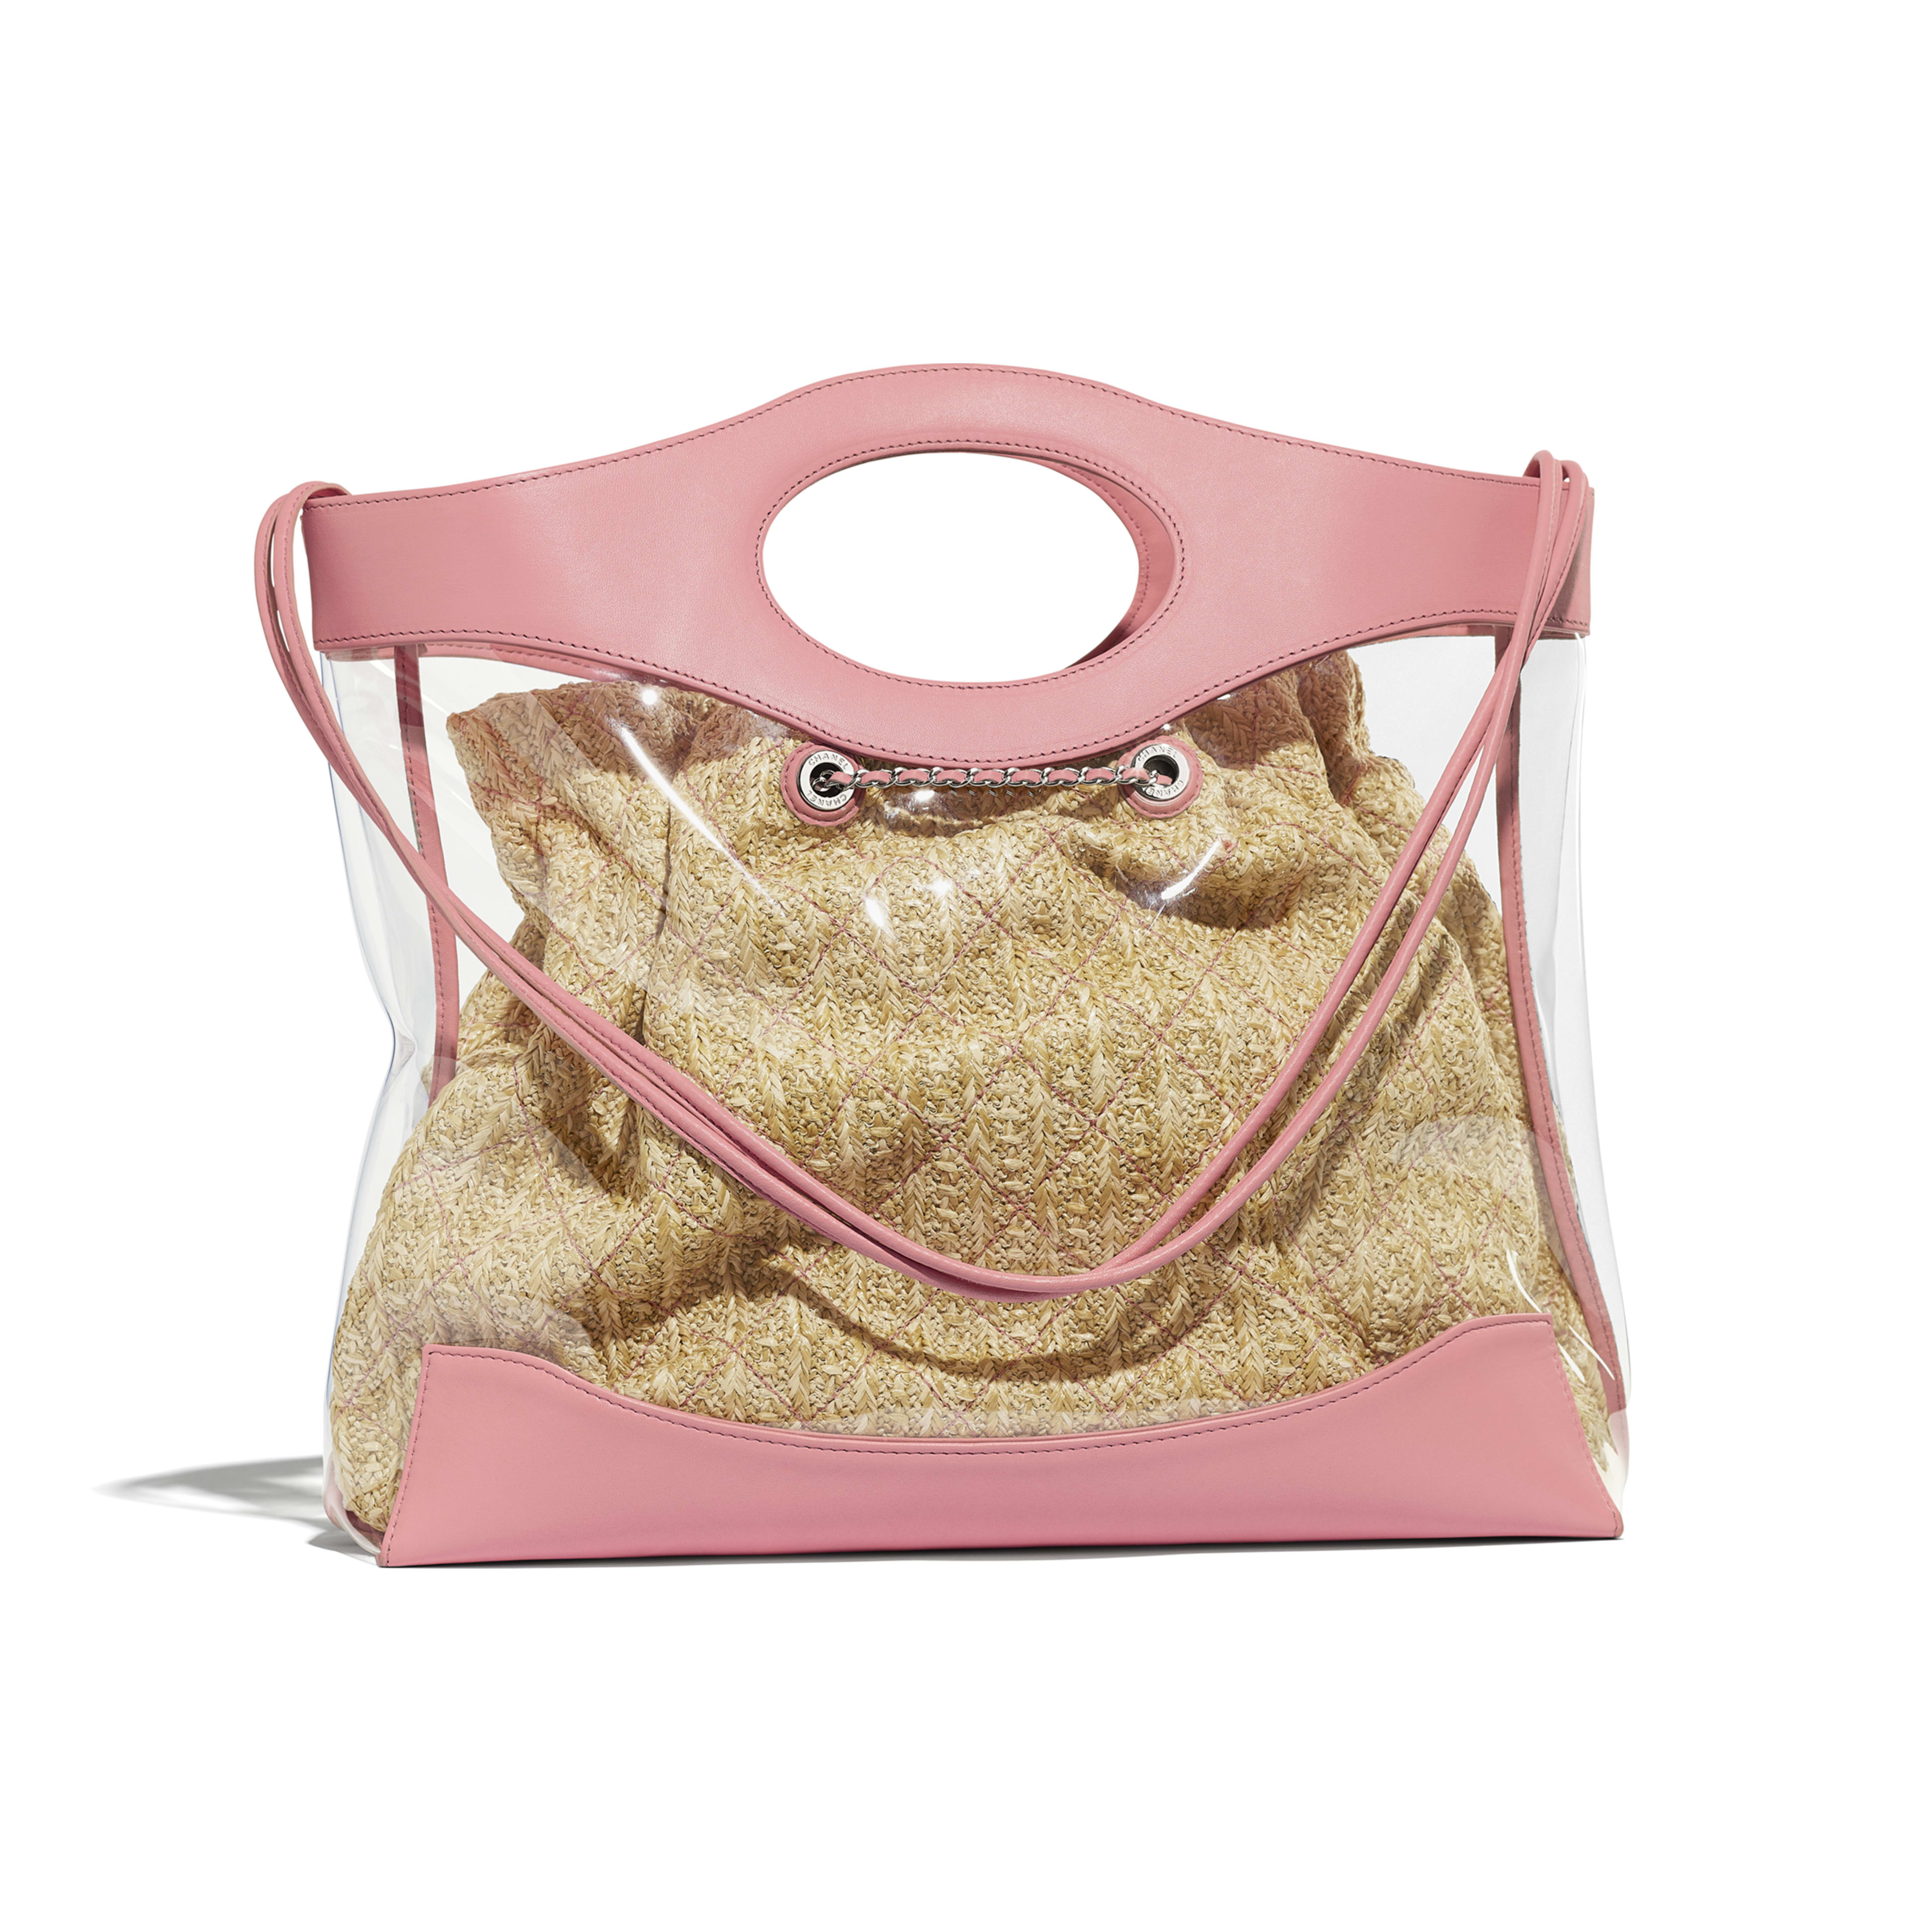 CHANEL 31 Shopping Bag - Pink - PVC, Calfskin & Silver-Tone Metal - Alternative view - see full sized version